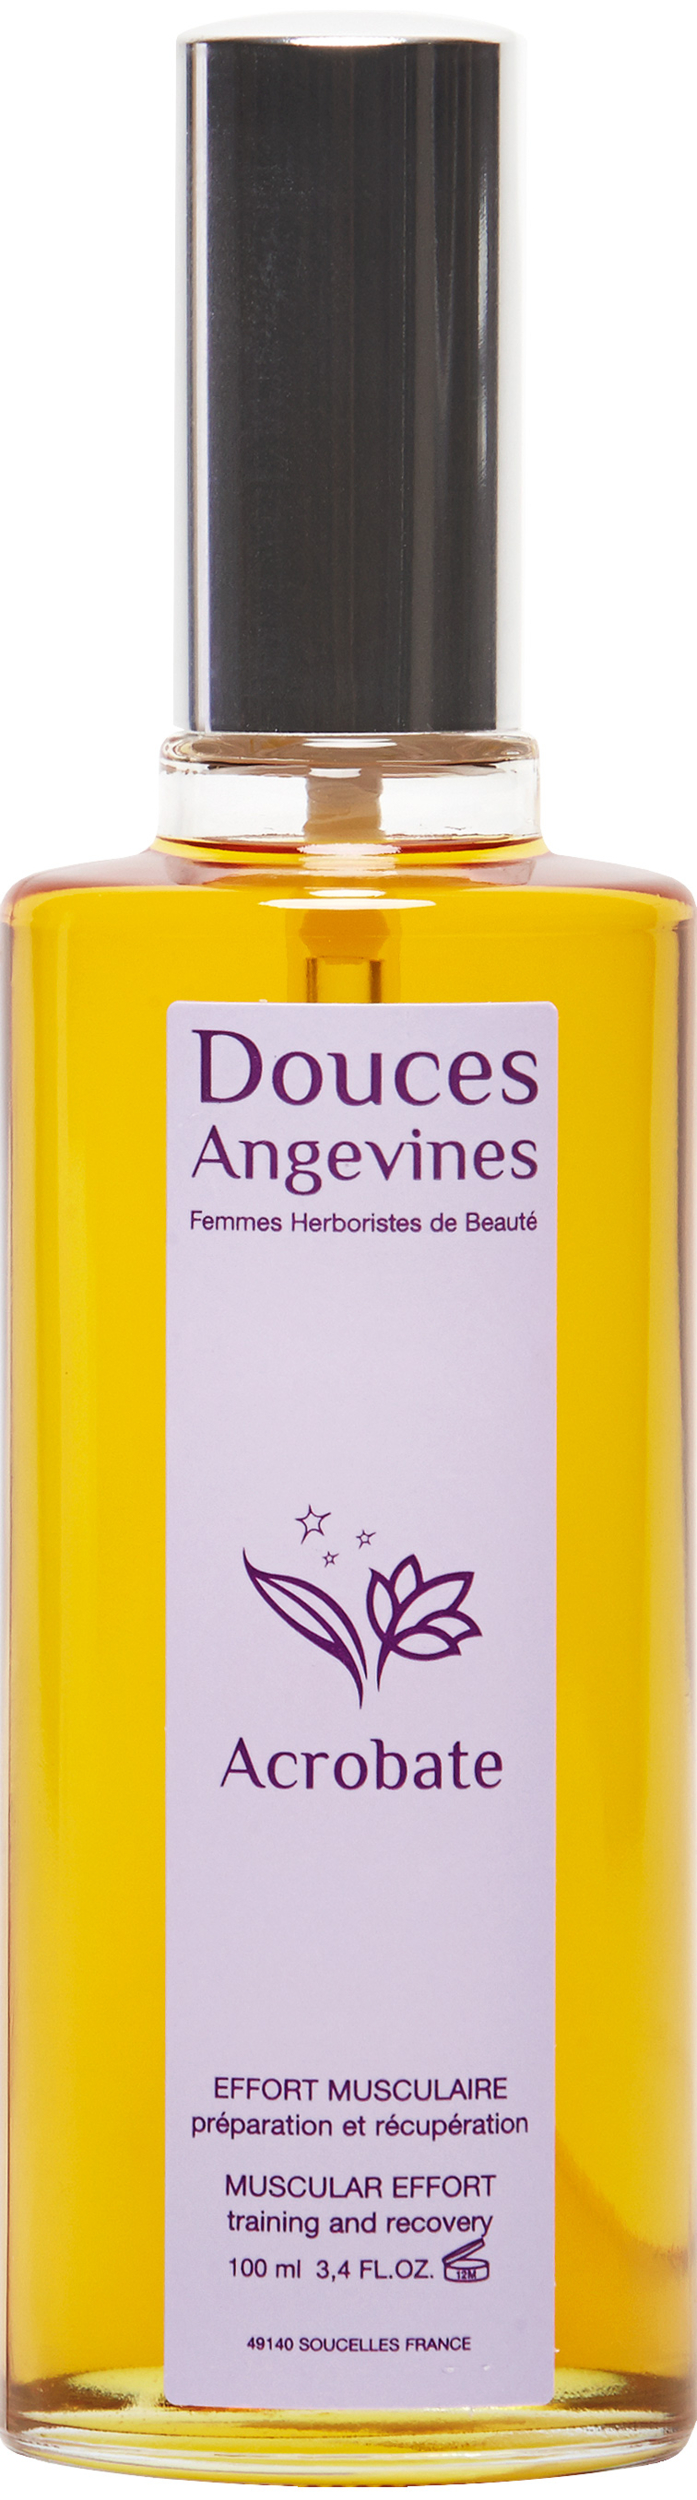 Doux Good - Douces Angevines - Acrobate